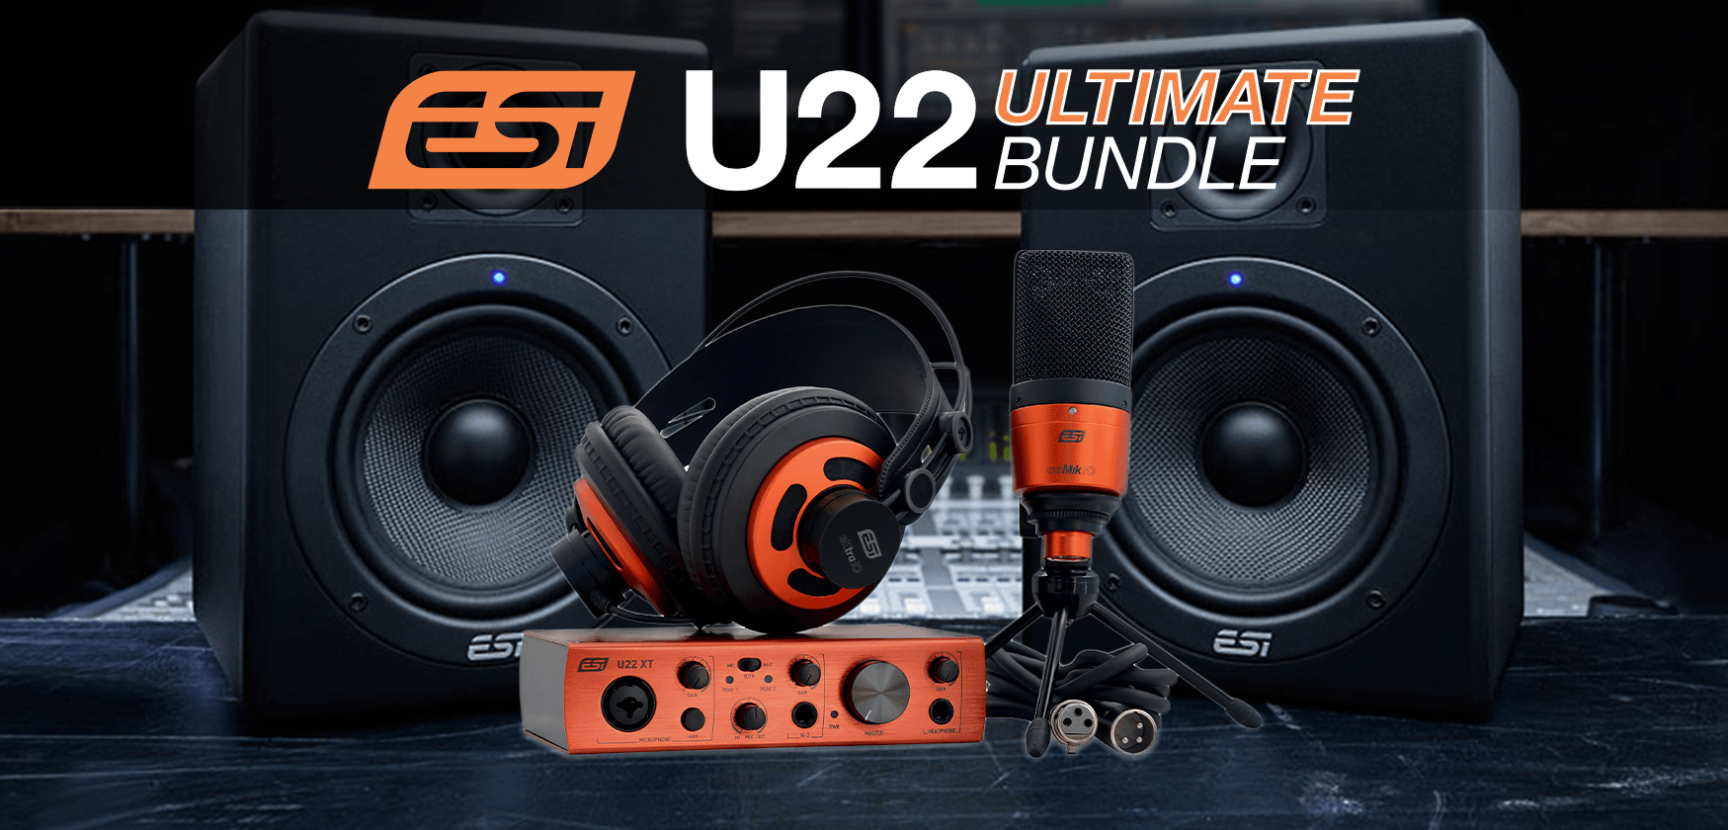 Introducing the ESI U22 Ultimate Bundle